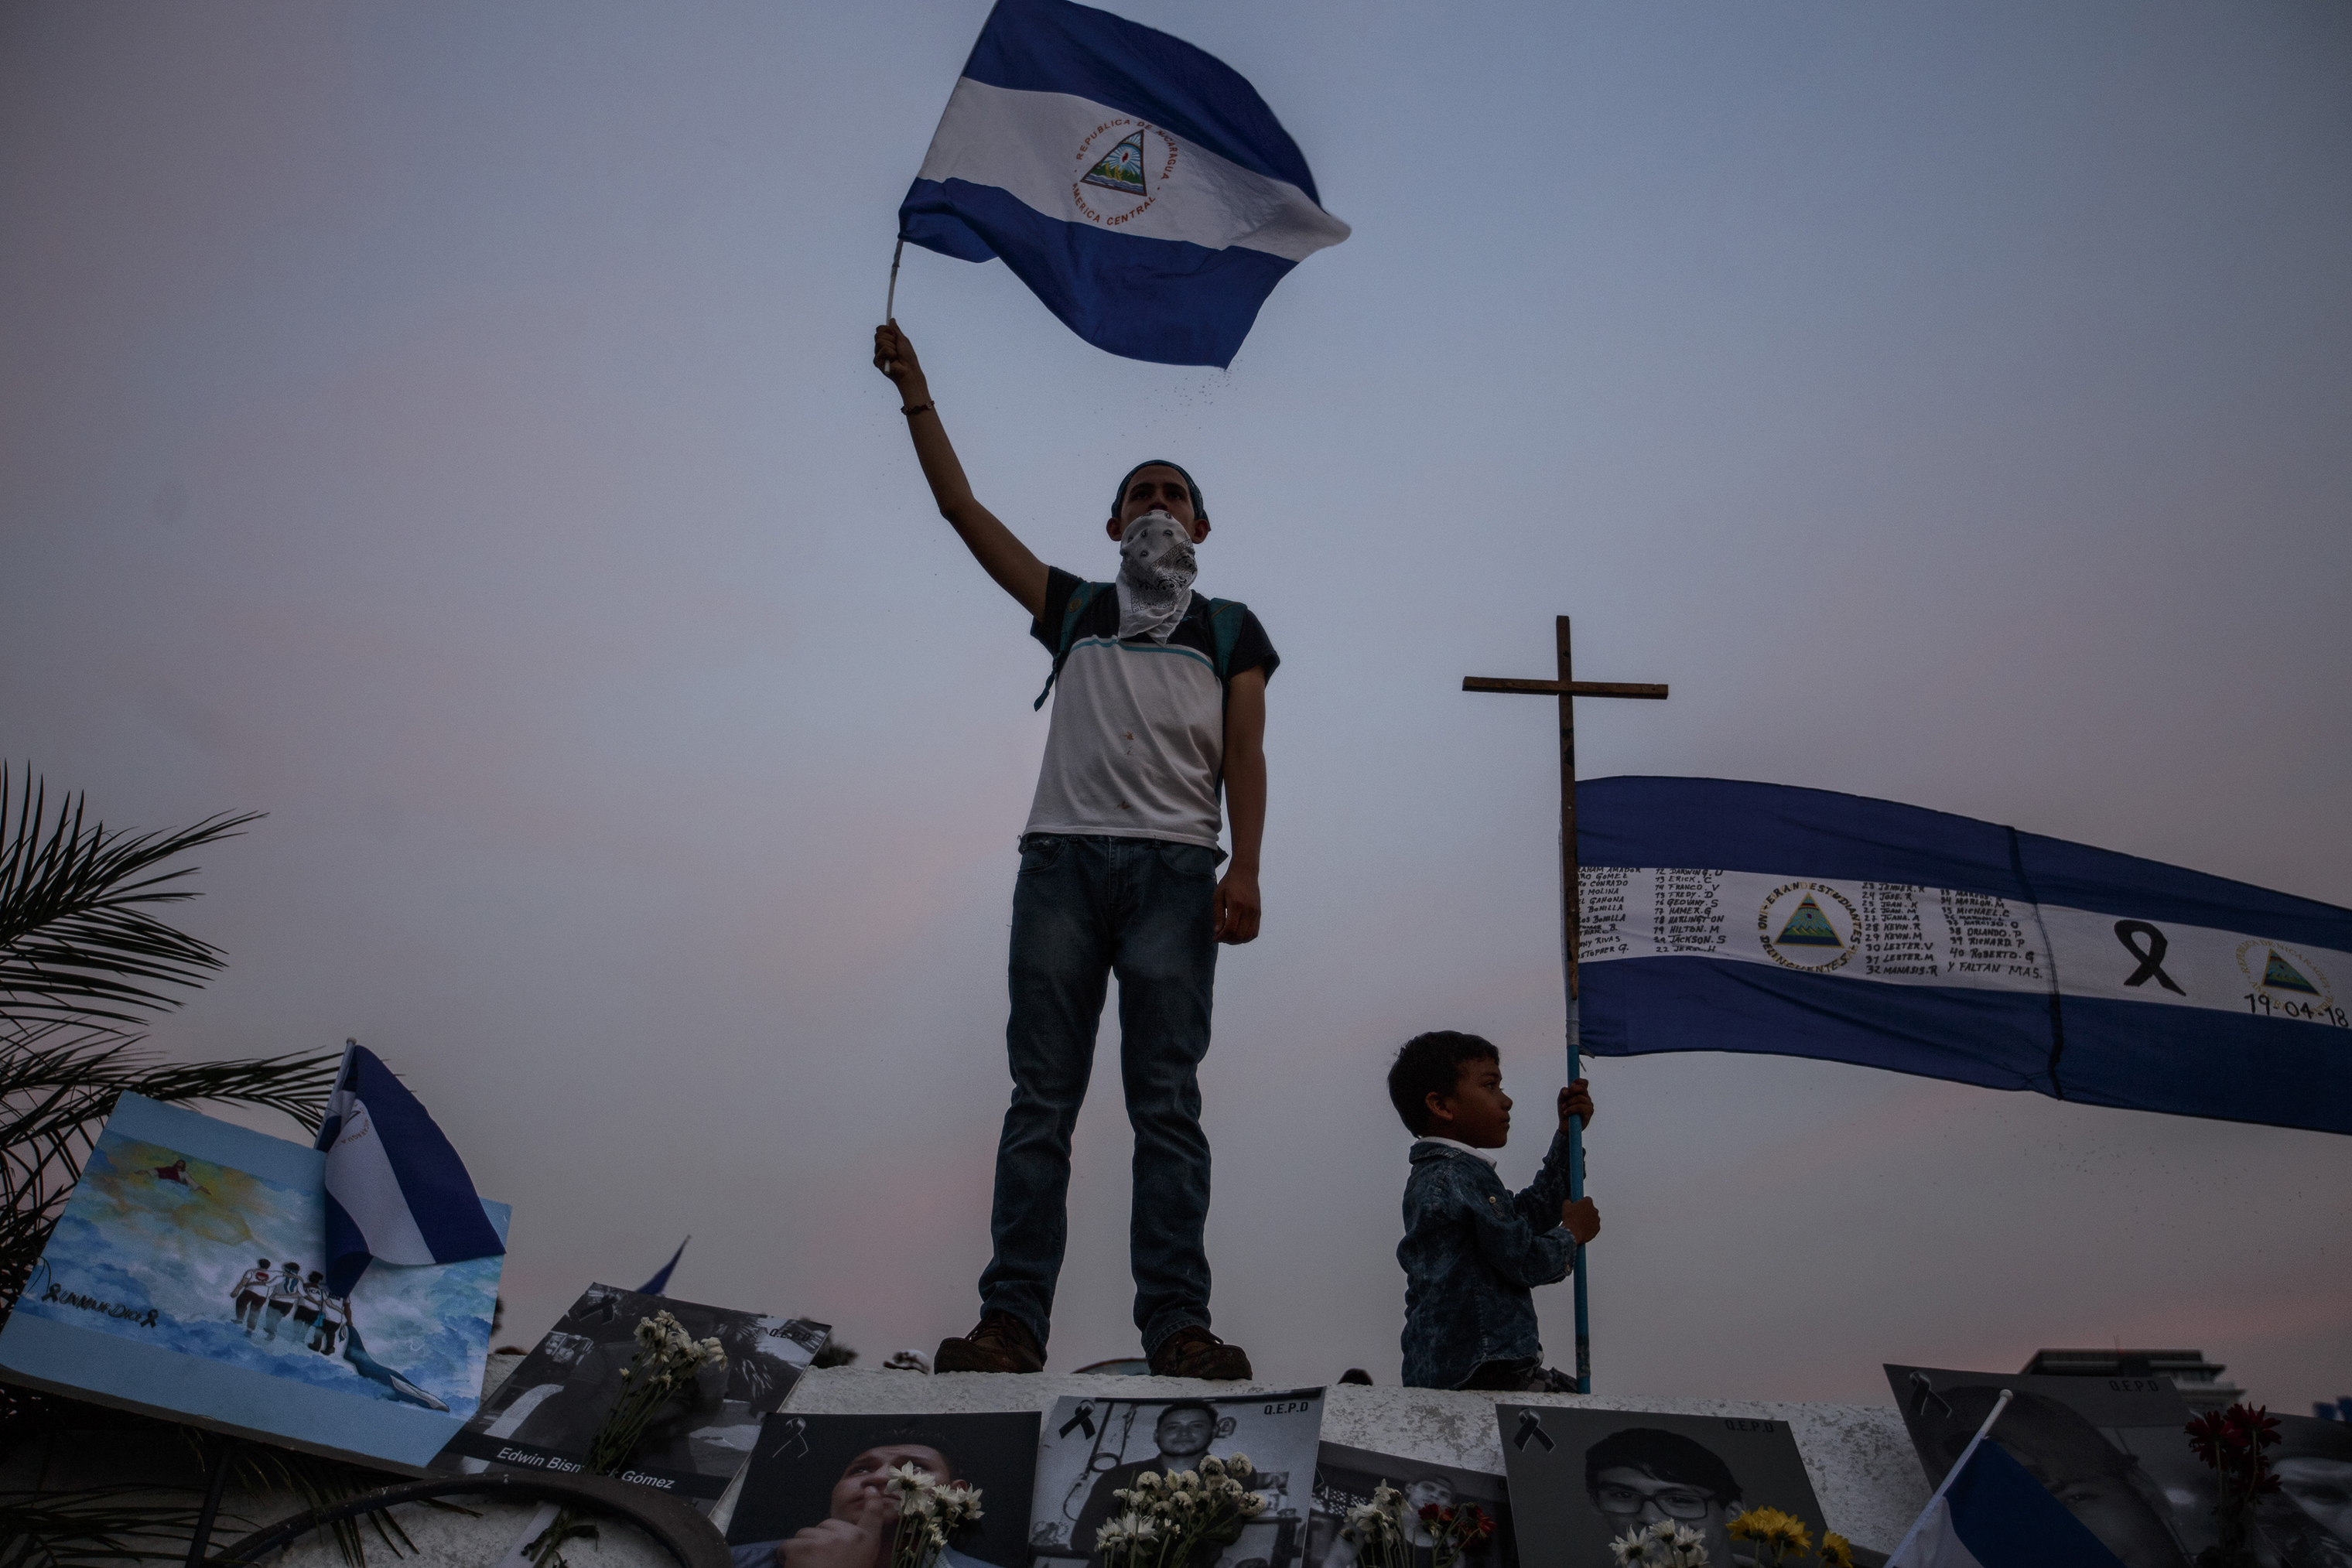 A demonstrator waves a flag during a protest in Managua on April 29.